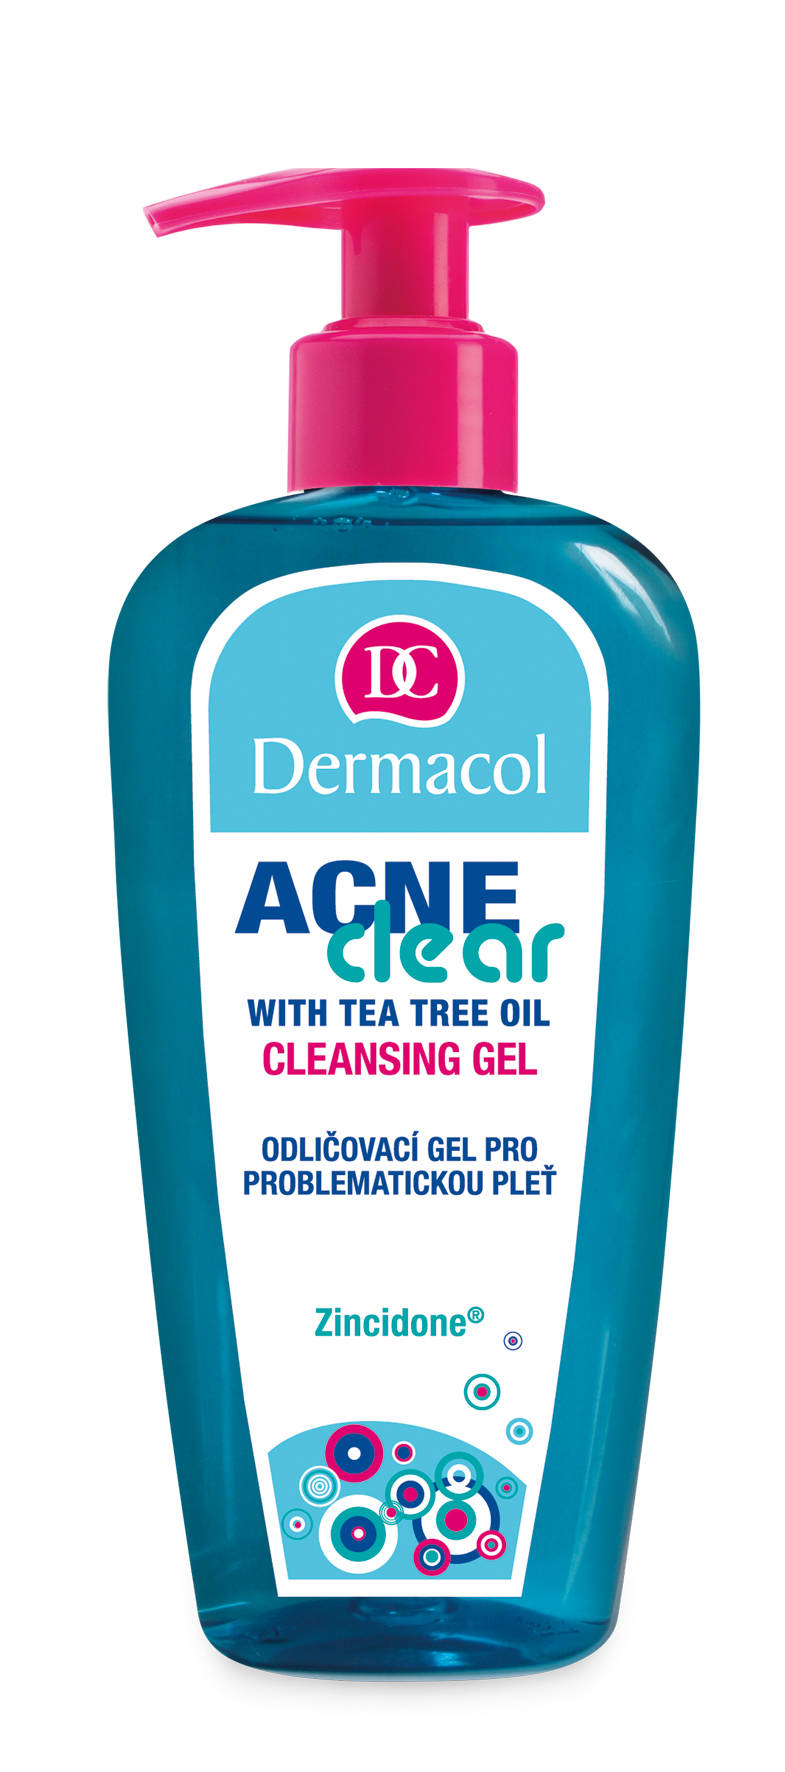 AcneClear Make-up Removal & Cleansing gel 200 ml1